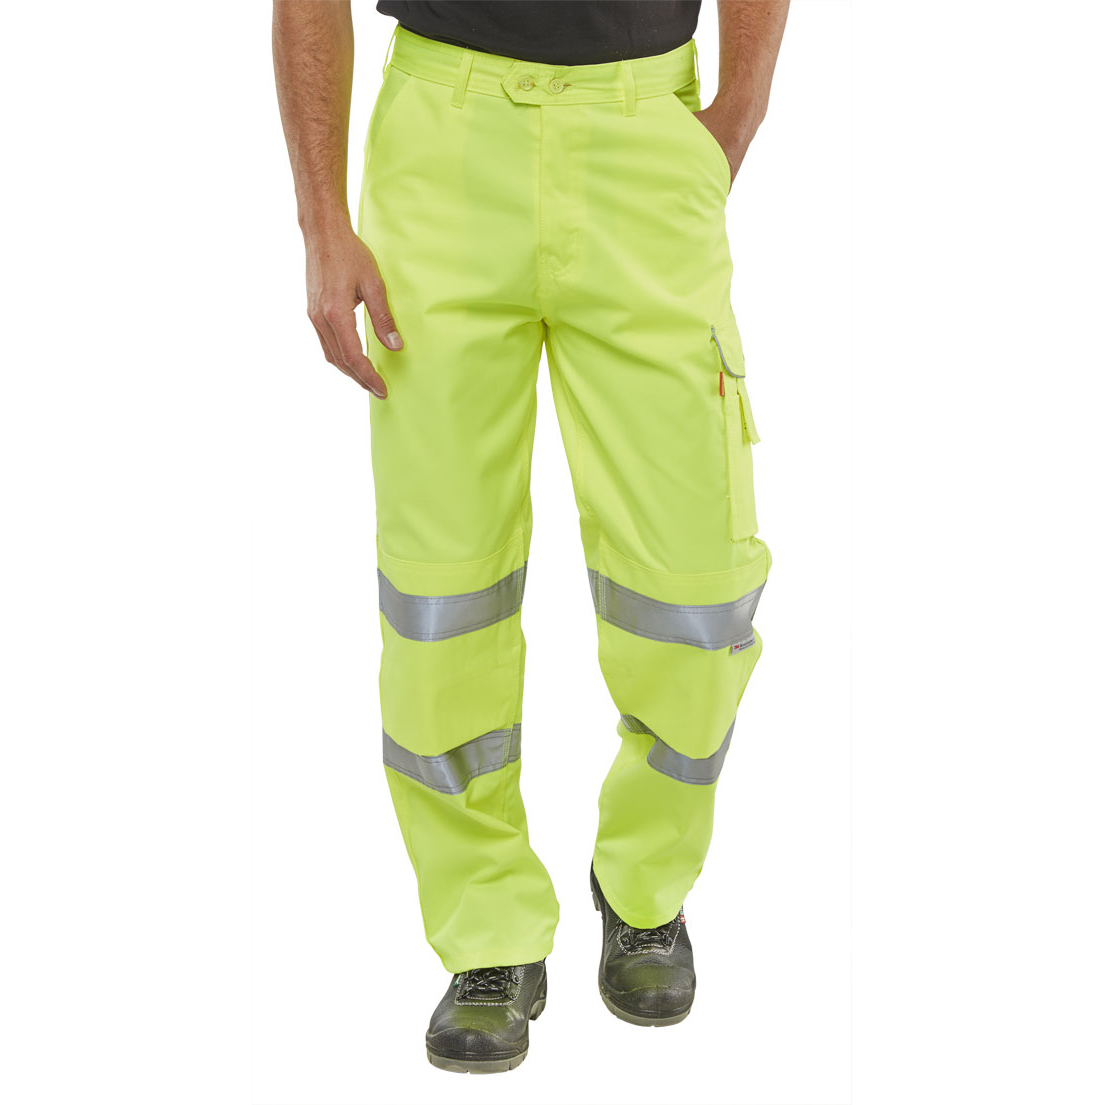 BSeen Trousers Polycotton Hi-Vis EN471 Saturn Yellow 40 Ref PCTENSY40 Up to 3 Day Leadtime